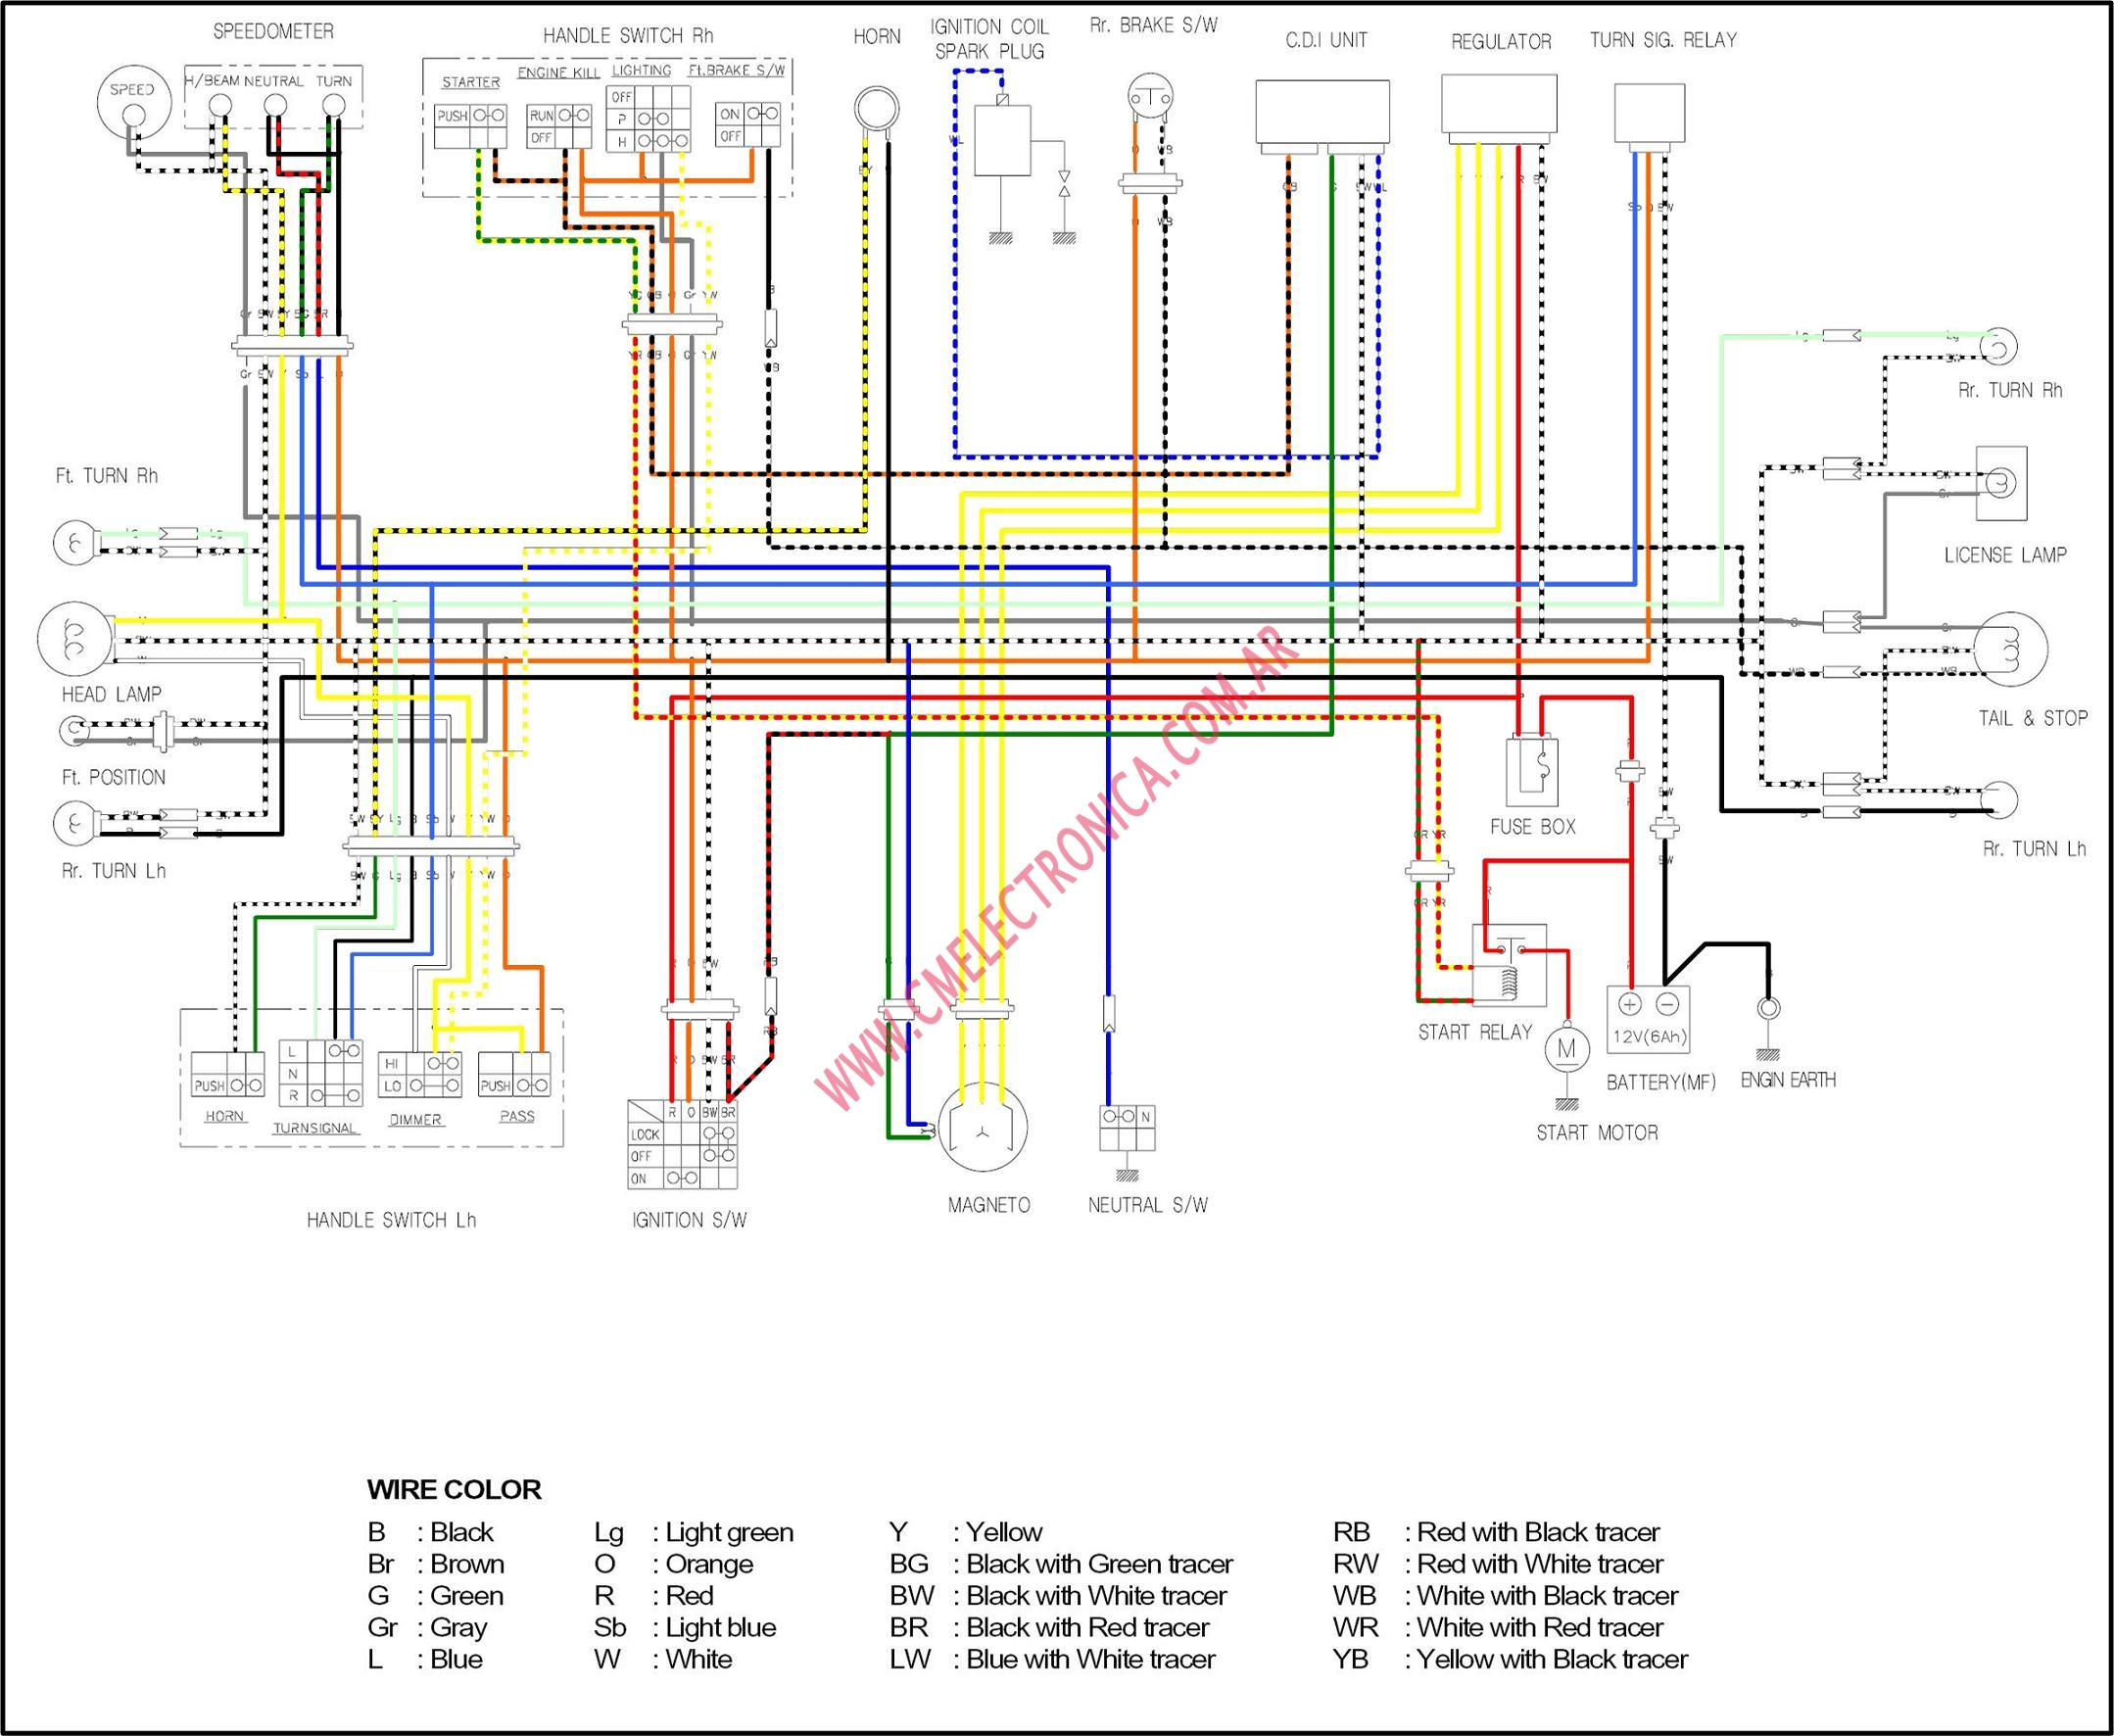 yamaha hyosung rt125 tw125 hyosung wiring diagram hyosung gt250r workshop manual \u2022 205 ufc co hyosung gt250r brake wiring diagram at webbmarketing.co